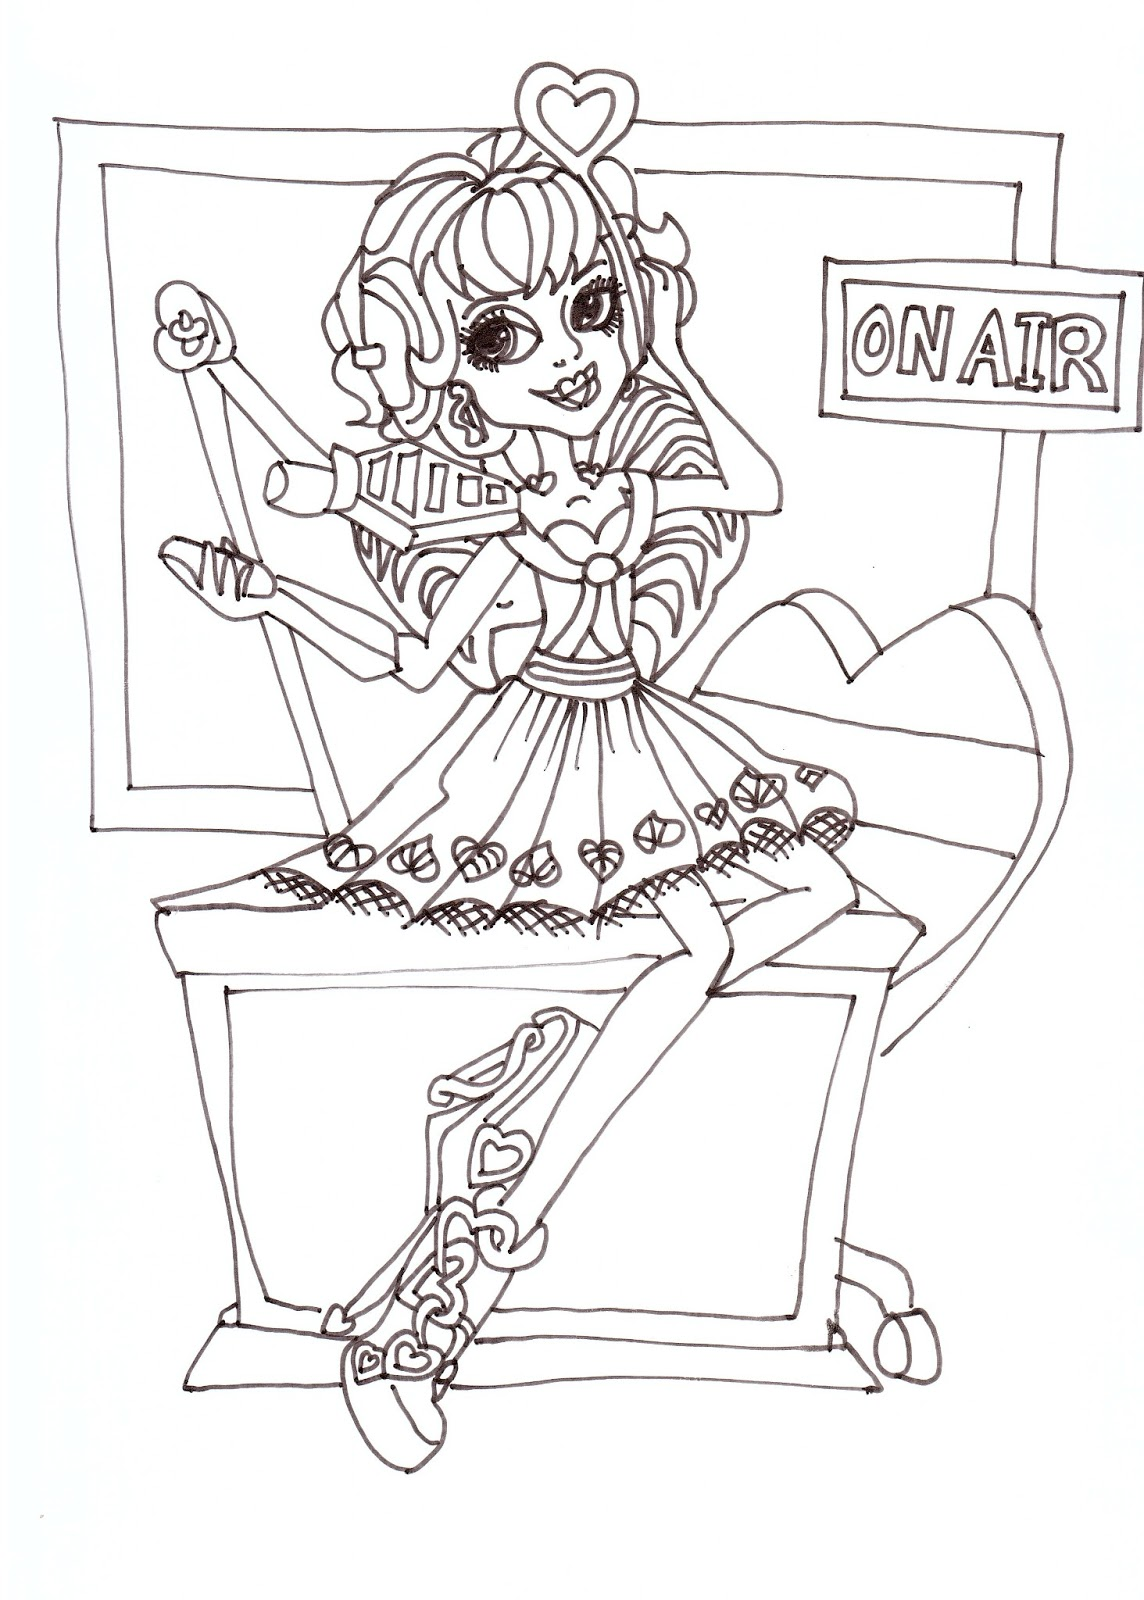 Free Printable Monster High Coloring Pages: C.A. Cupid Coloring Sheet